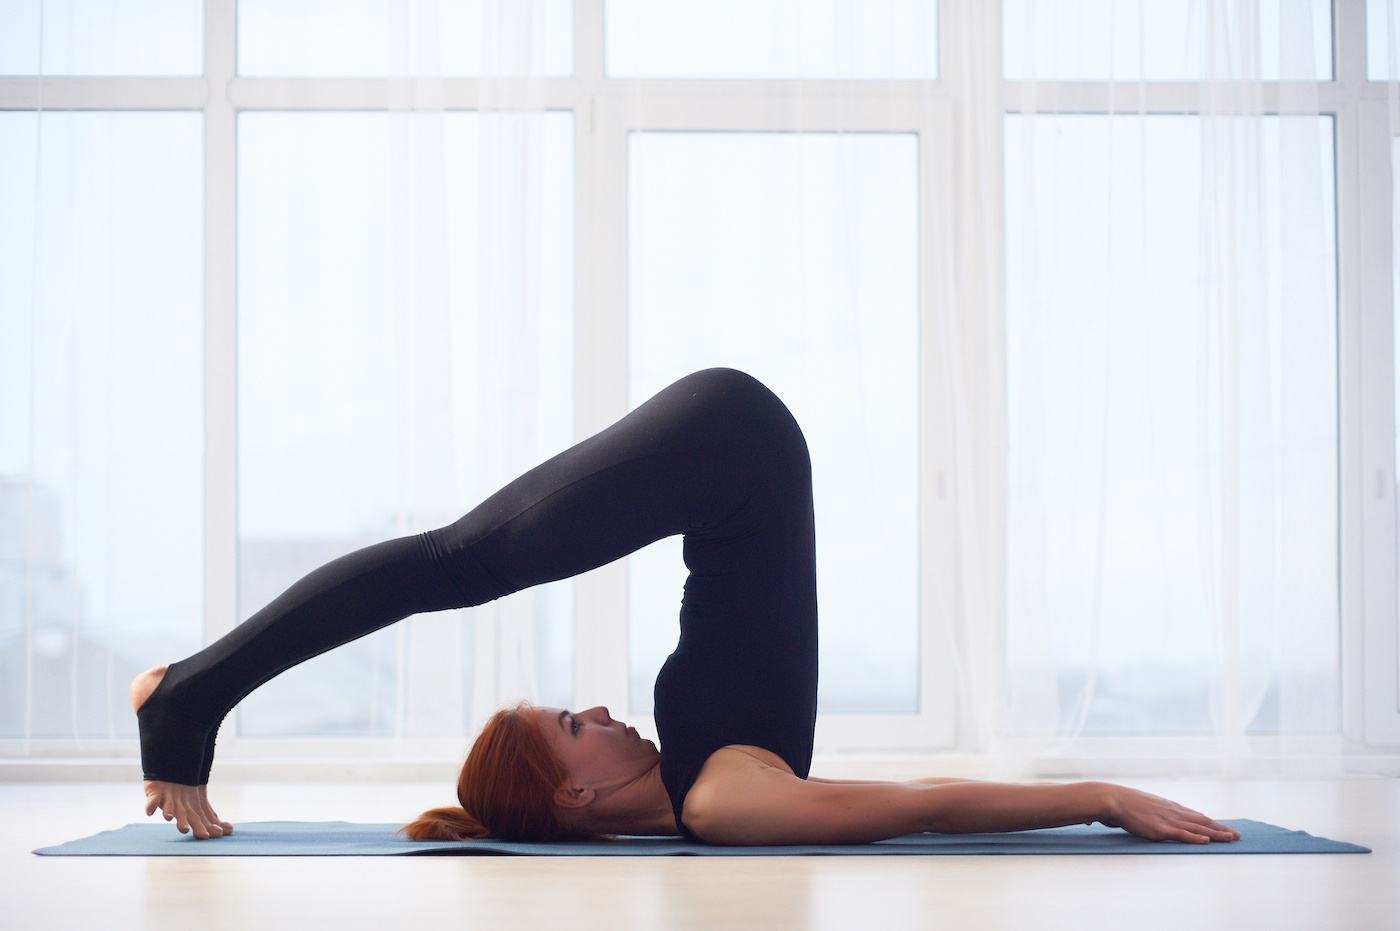 If you've had a dizzy spell during yoga, here's what could be behind it